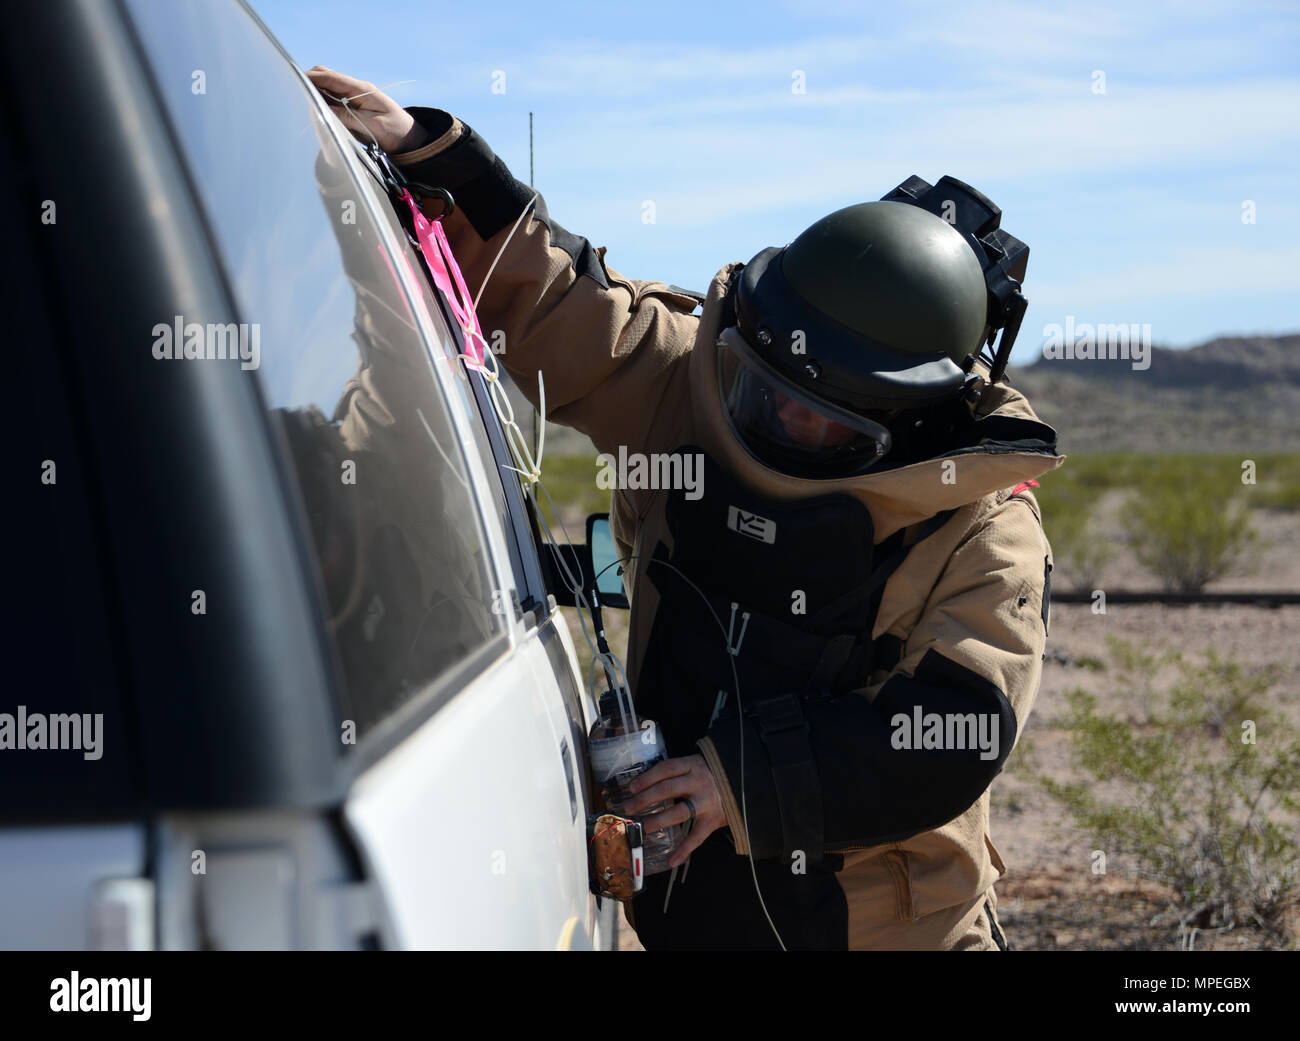 Staff Sgt. Timothy Doland, 56th Civil Engineer Squadron explosive ordnance disposal team leader, places a water bottle charge on the side of a vehicle during a contingency problem Feb. 8, 2017, at the Barry M. Goldwater Range in Gila Bend, Az. Throughout the exercise, EOD Airmen were challenged with various contingency problems in which they had to detect, defuse, and destroy potential roadside bomb threats. (U.S. Air Force photo by Airman 1st Class Alexander Cook) - Stock Image